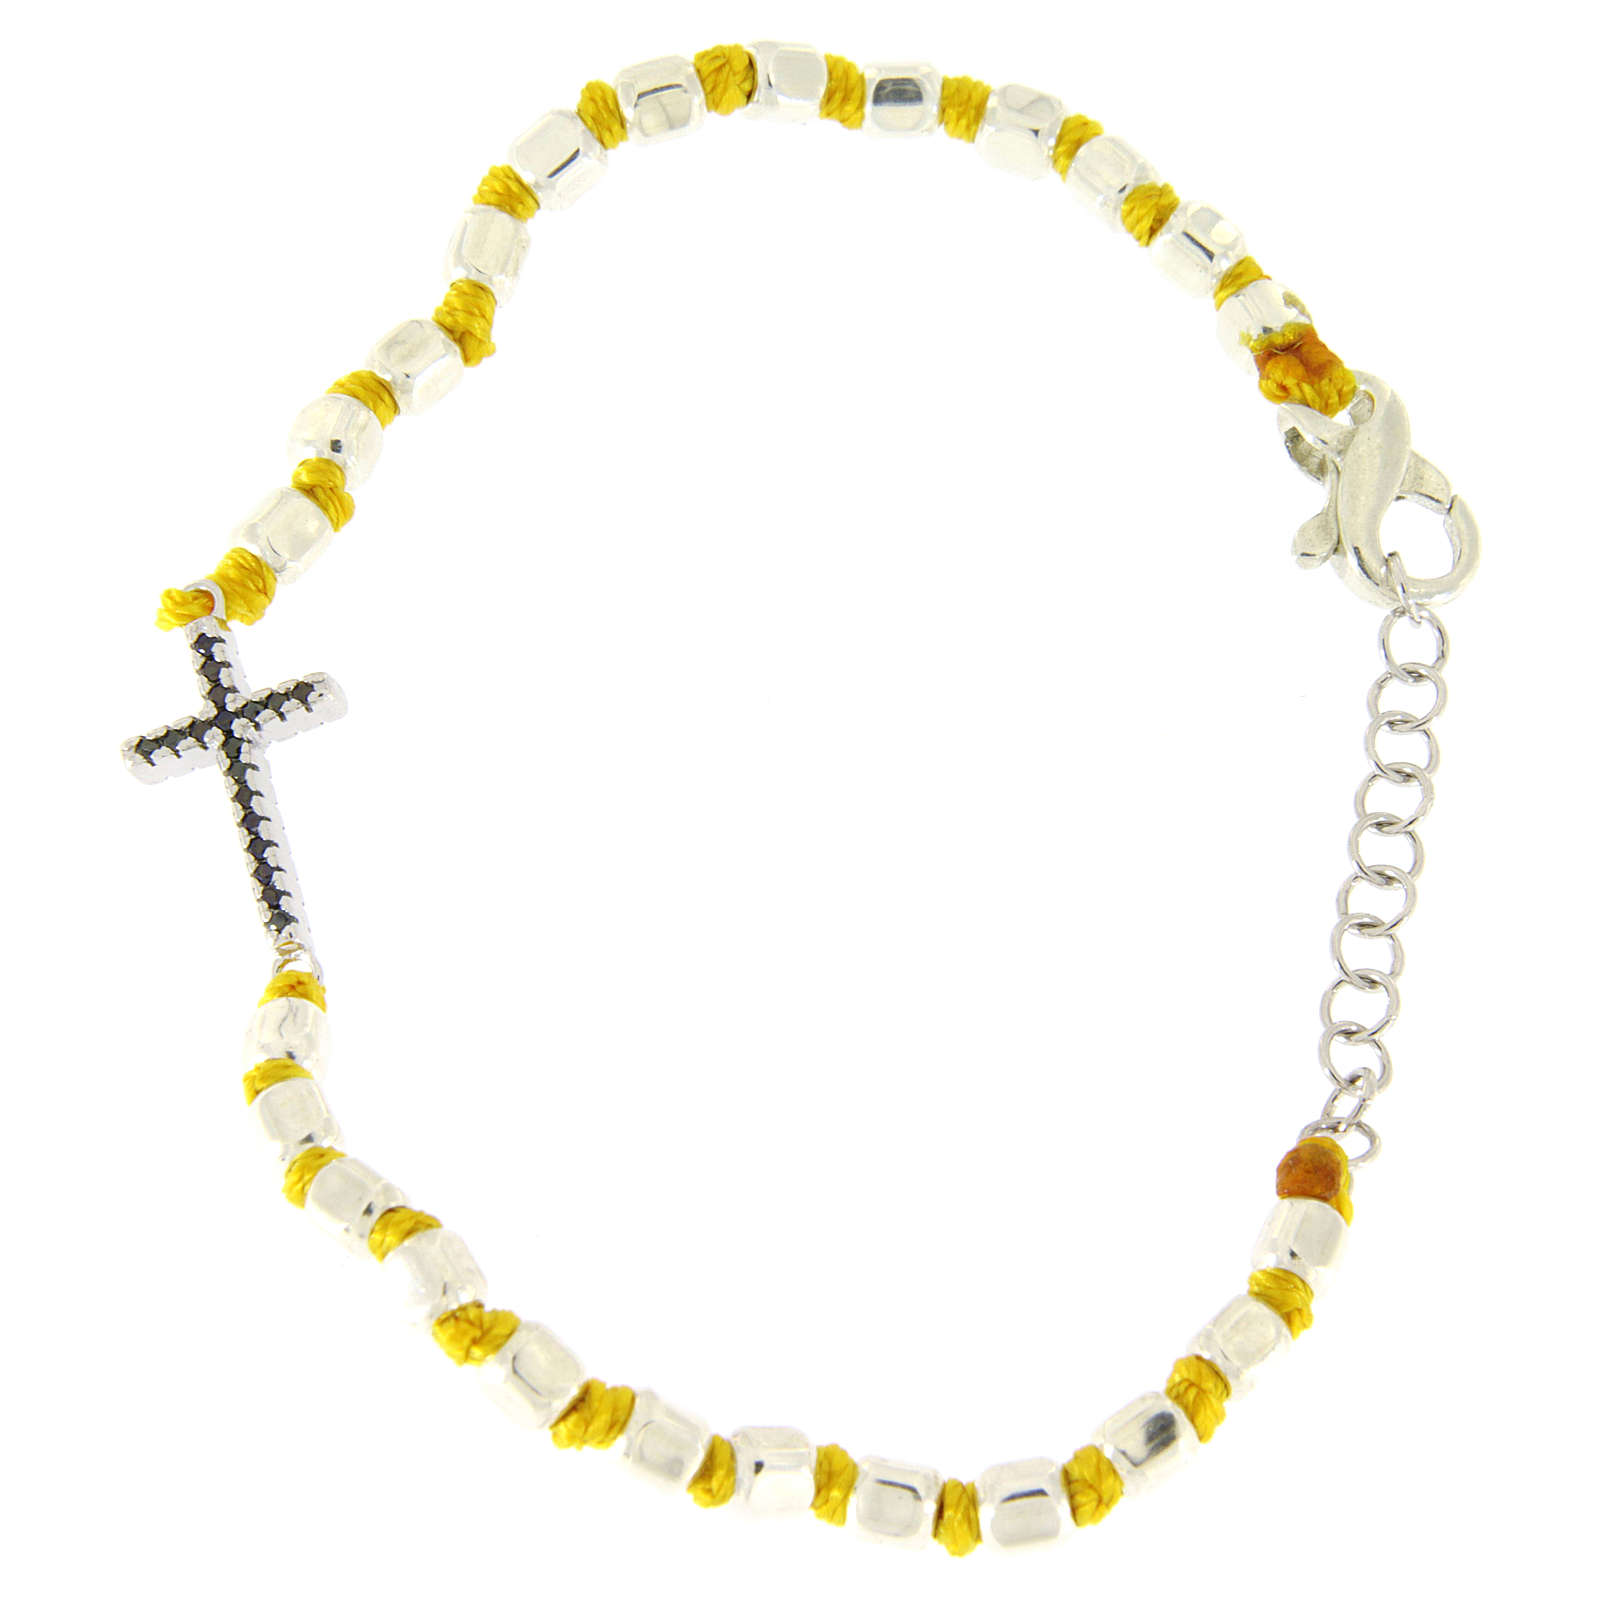 Bracelet with multifaceted spheres sized 2 mm with black zirconate cross and yellow cotton cord 4